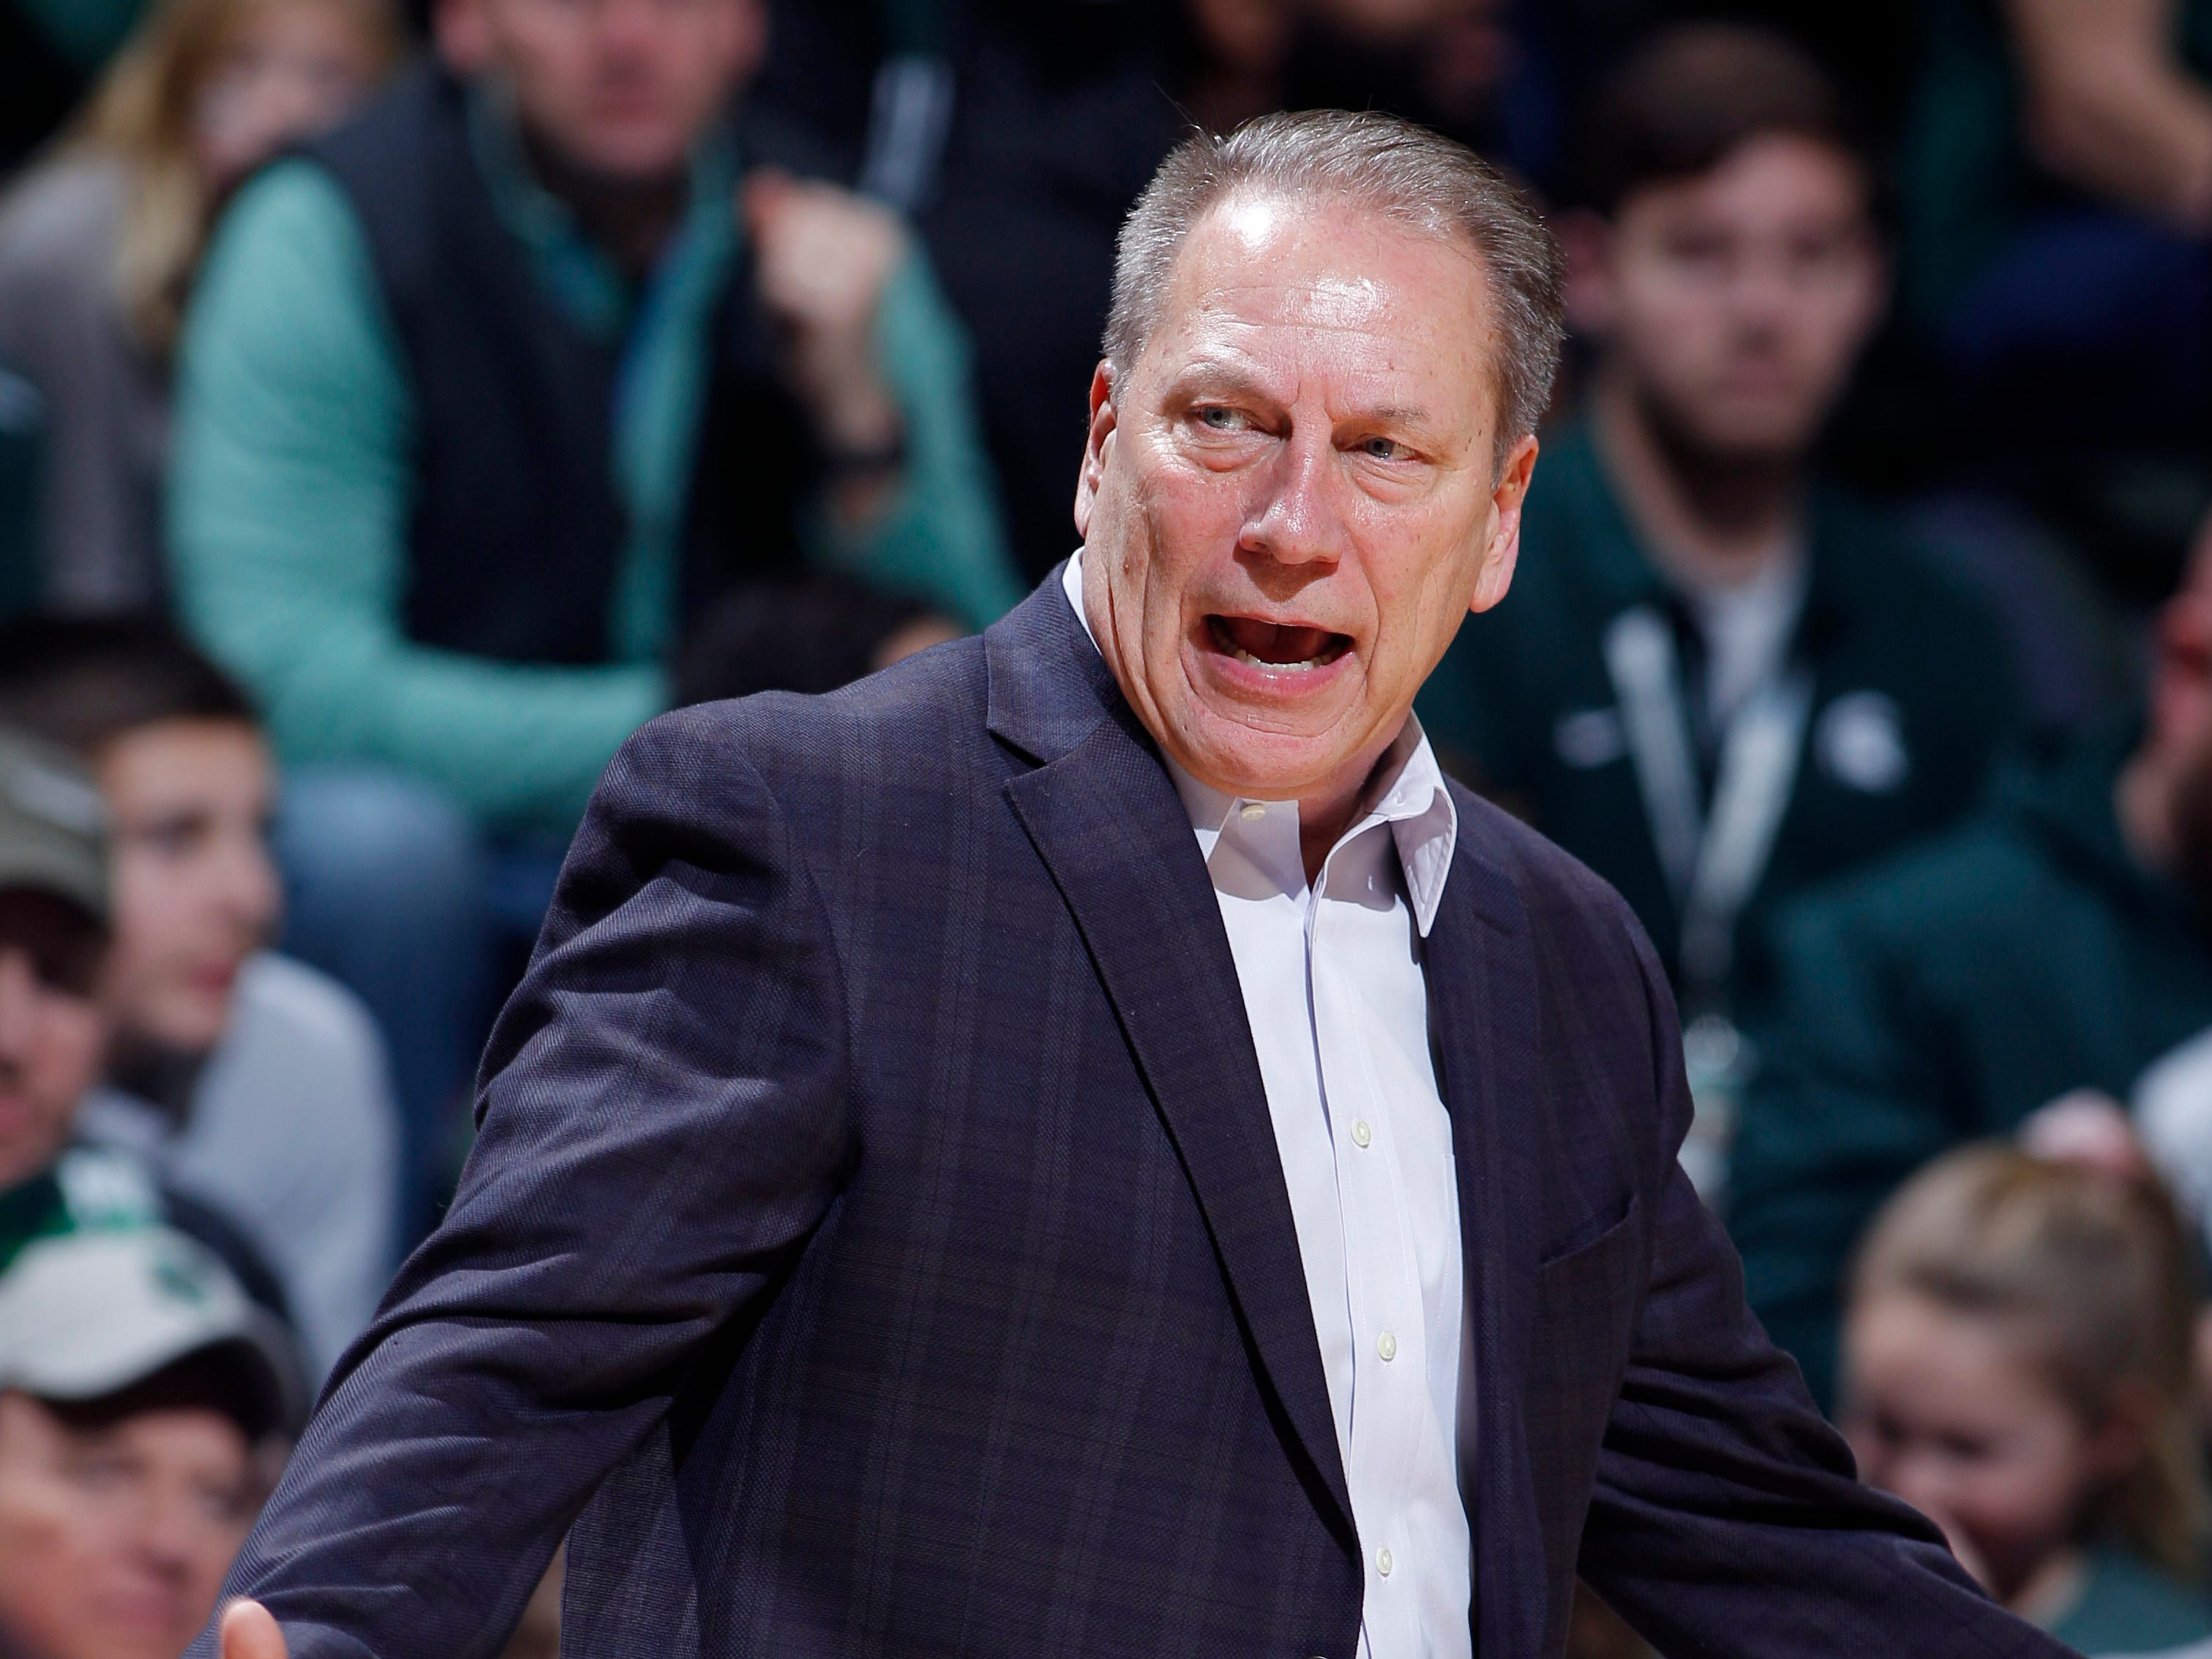 Michigan State coach Tom Izzo reacts against Northern Illinois, Saturday, Dec. 29, 2018, in East Lansing, Mich.